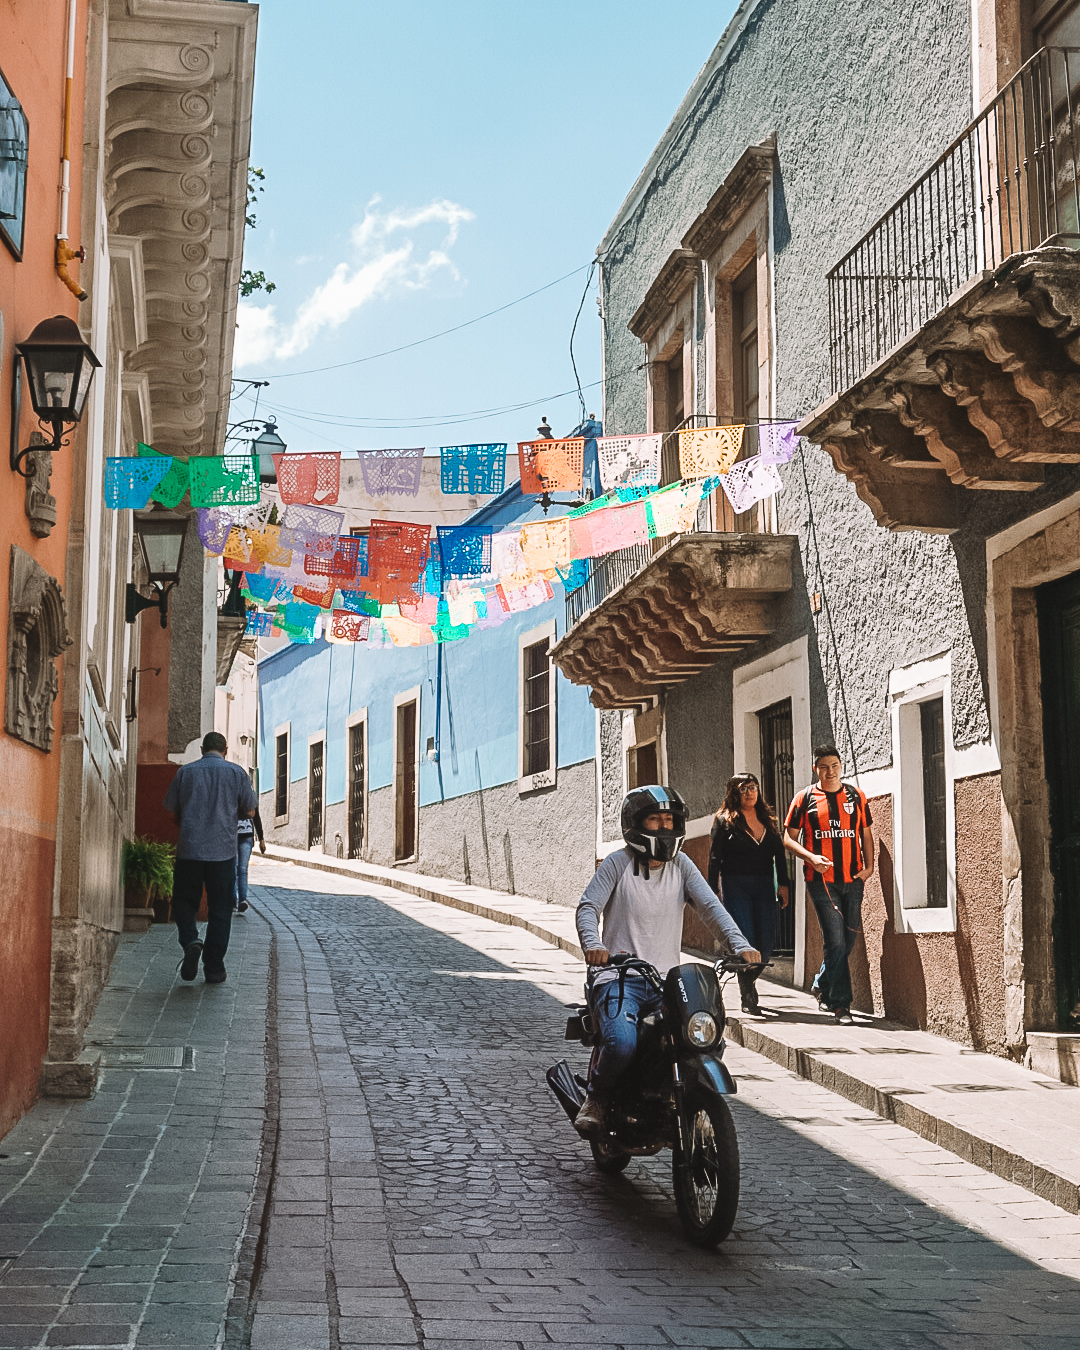 Colorful street with flags in Guanajuato, Mexico